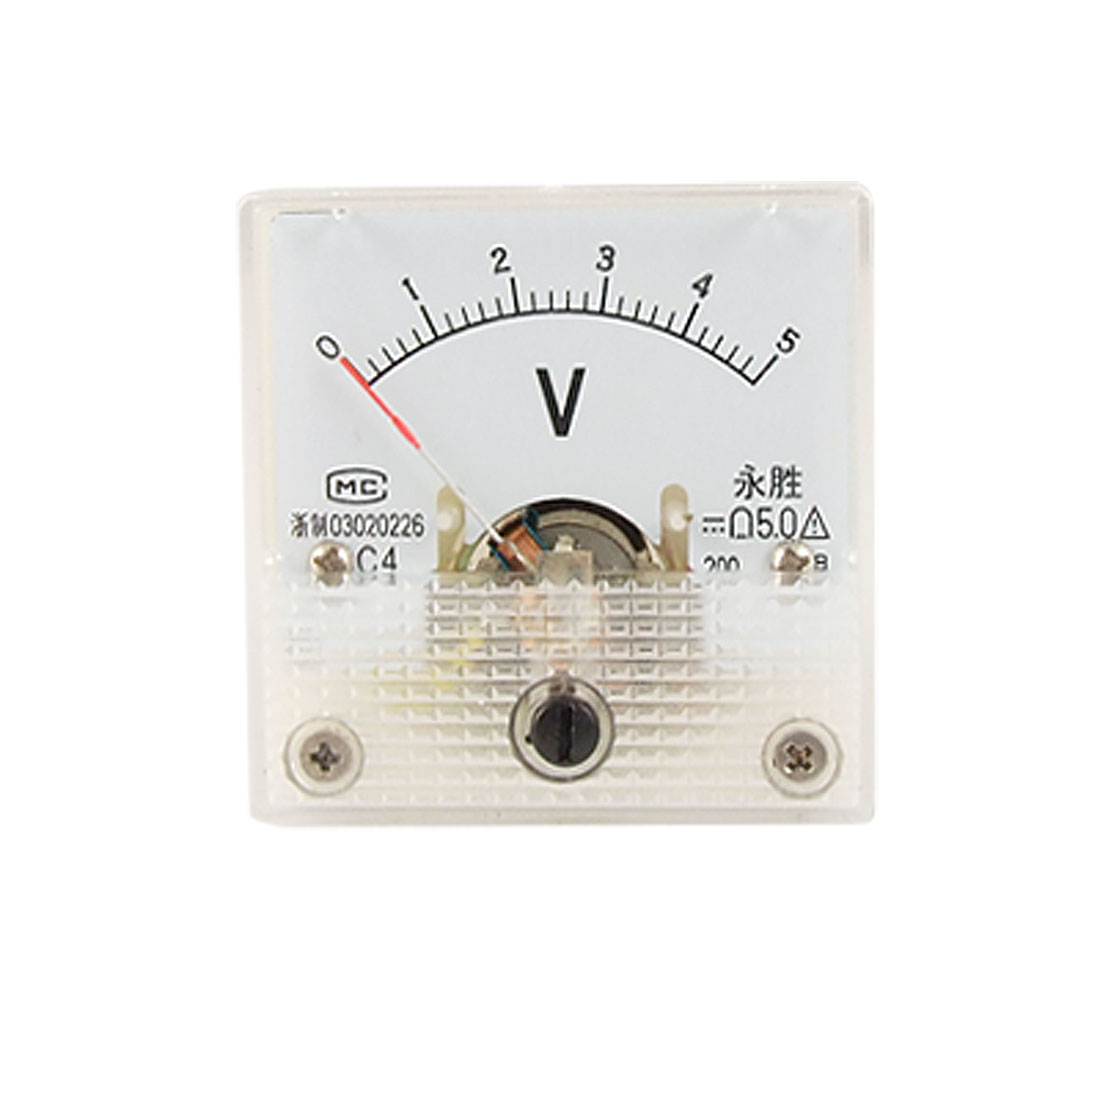 Mini Square DC 0-5V Analog Volt Panel Meter Voltmeter